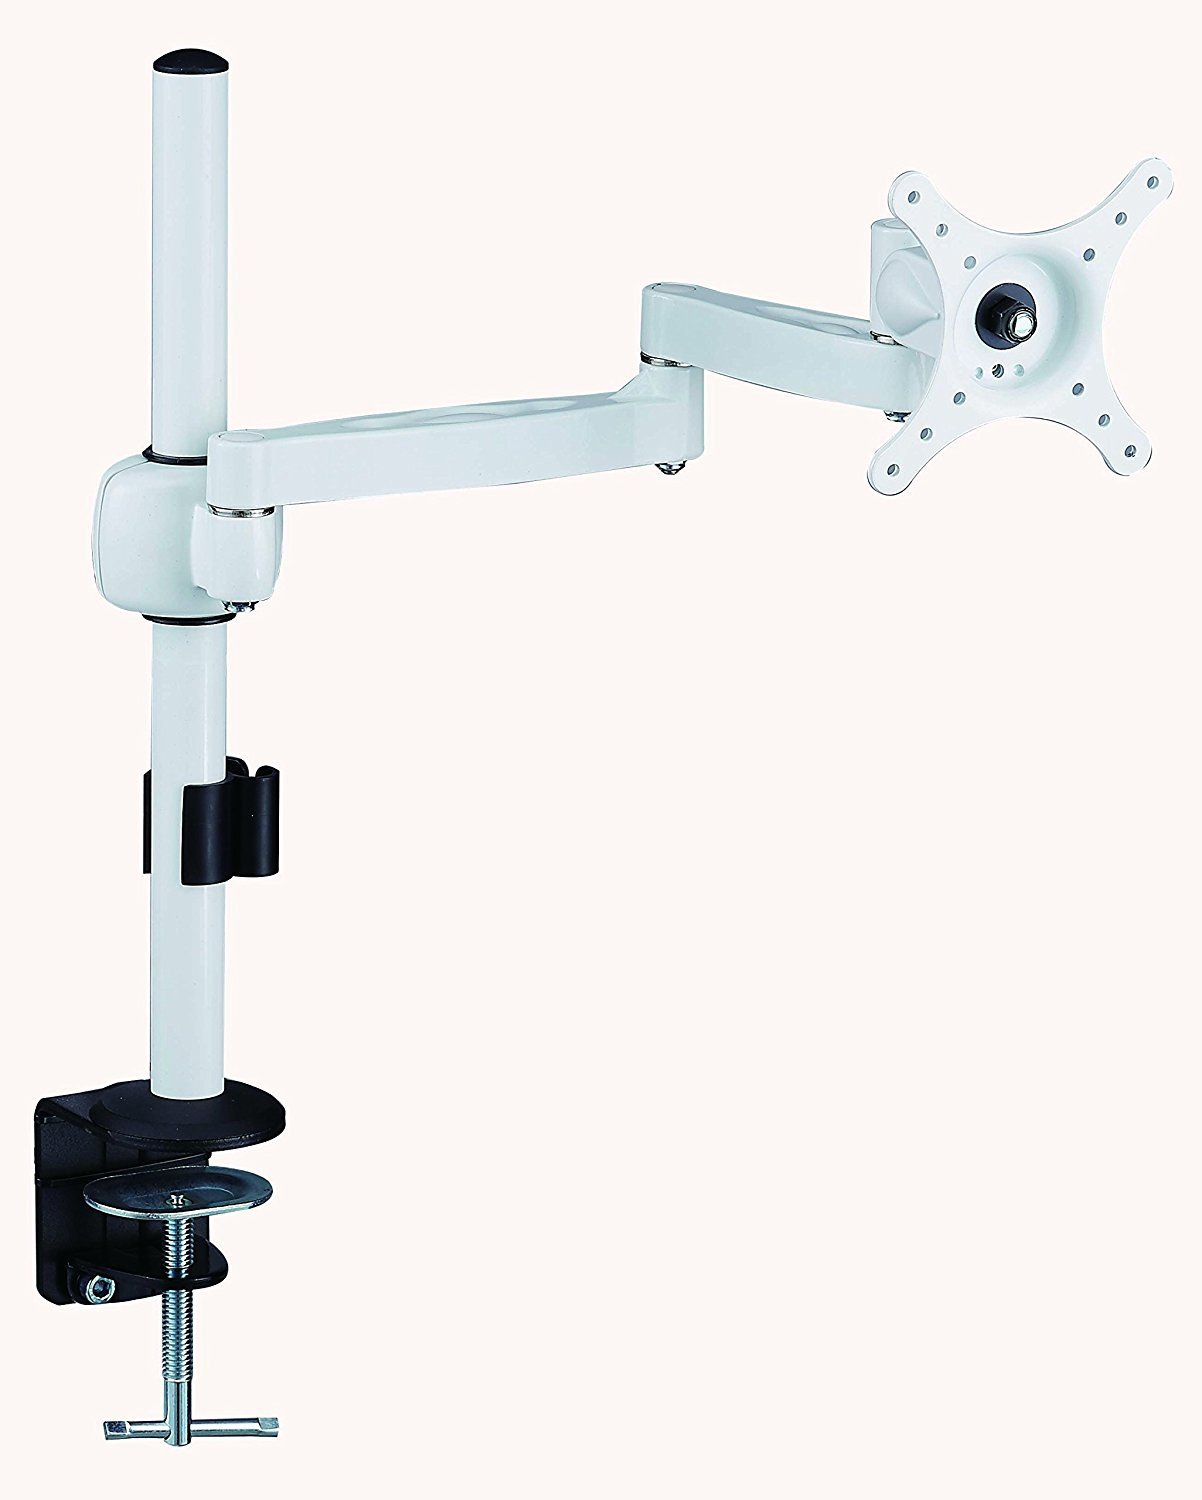 MDM04 LCD Monitor Stand Desk Mount Bracket Dual Arms Swivel & Tilt (Colour Options Available)